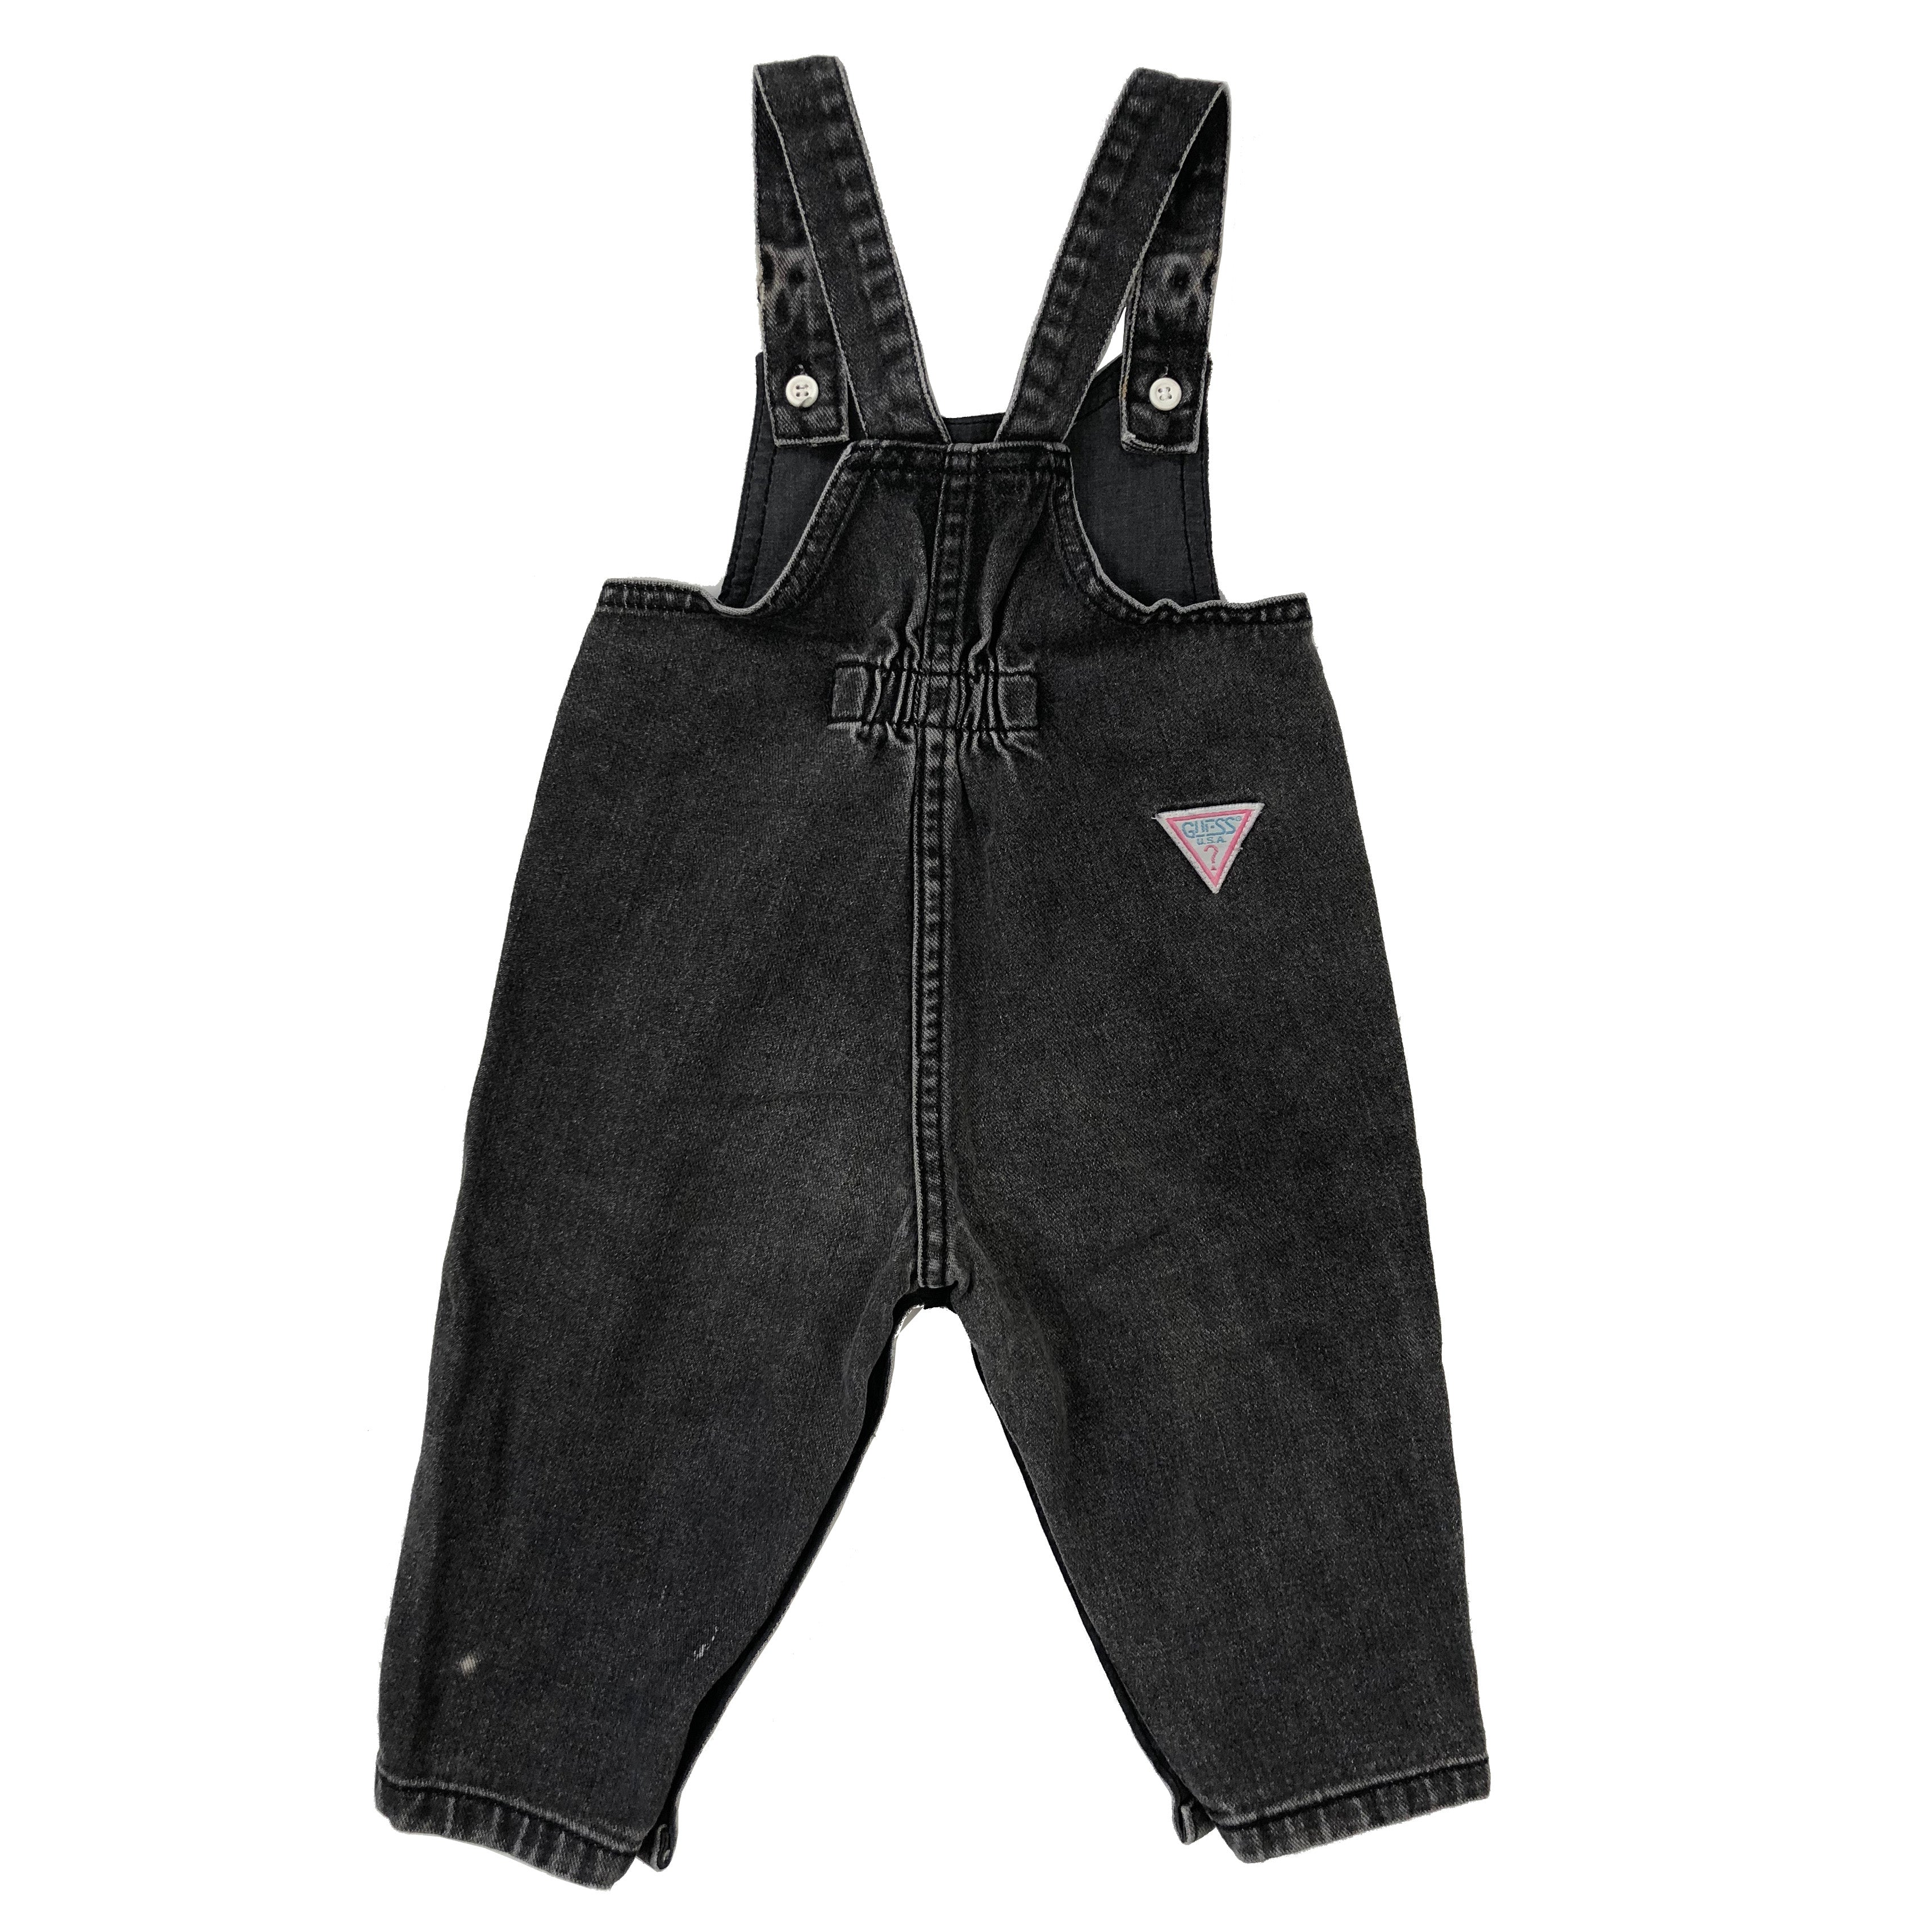 1980s Vintage Guess Black Overalls 12M